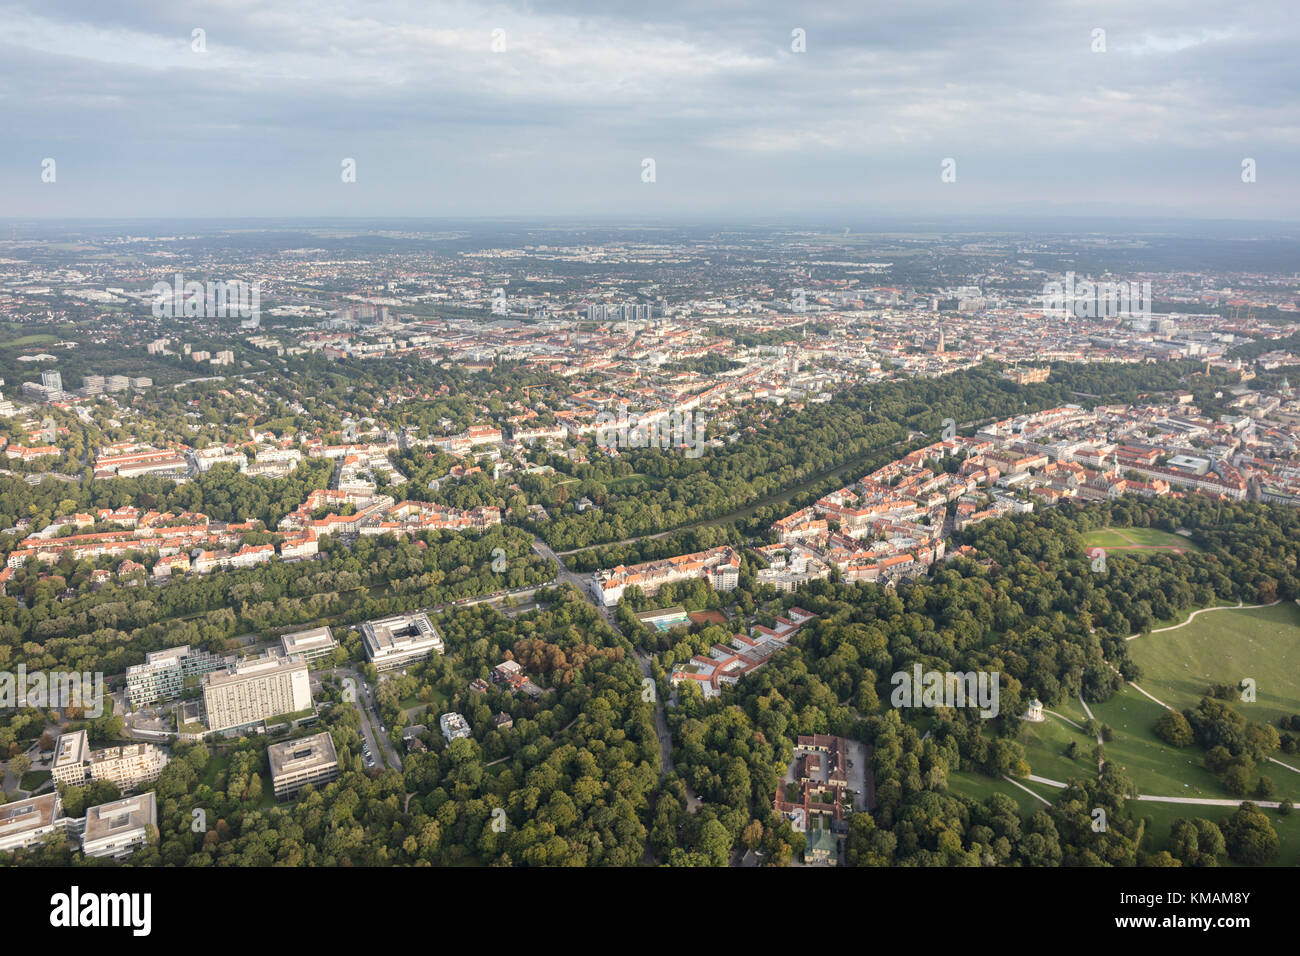 aerial view of the English Garden and surrounding suburbs, Munich, Bavaria, Germany - Stock Image